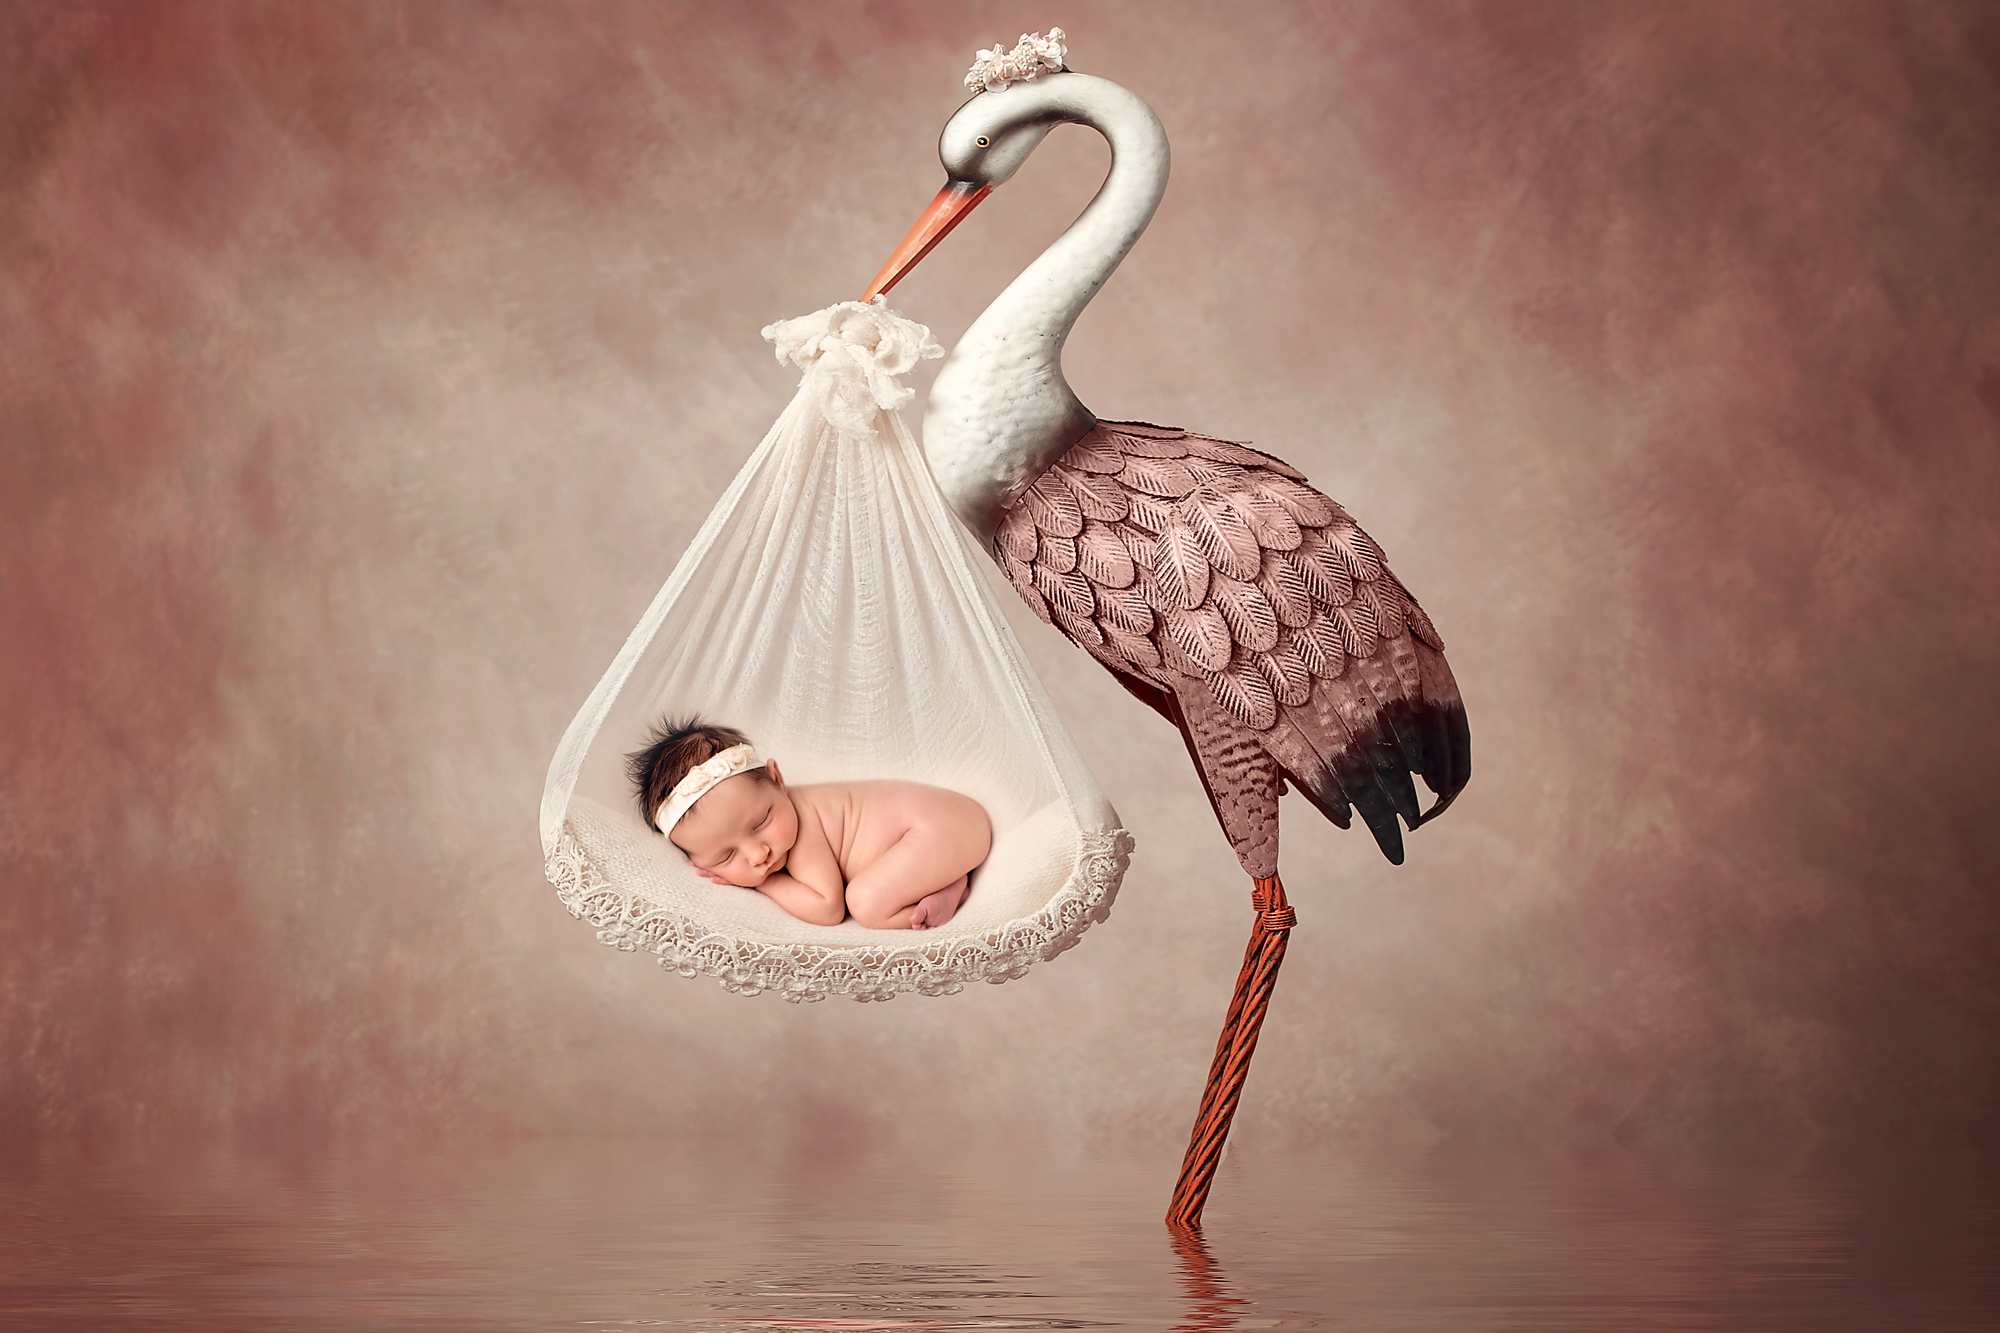 Stork and a baby. Digital backdrop of a stork holding a baby. Newborn Photoshoot ideas. Calgary and Airdrie newborn baby photographer - Milashka Photography